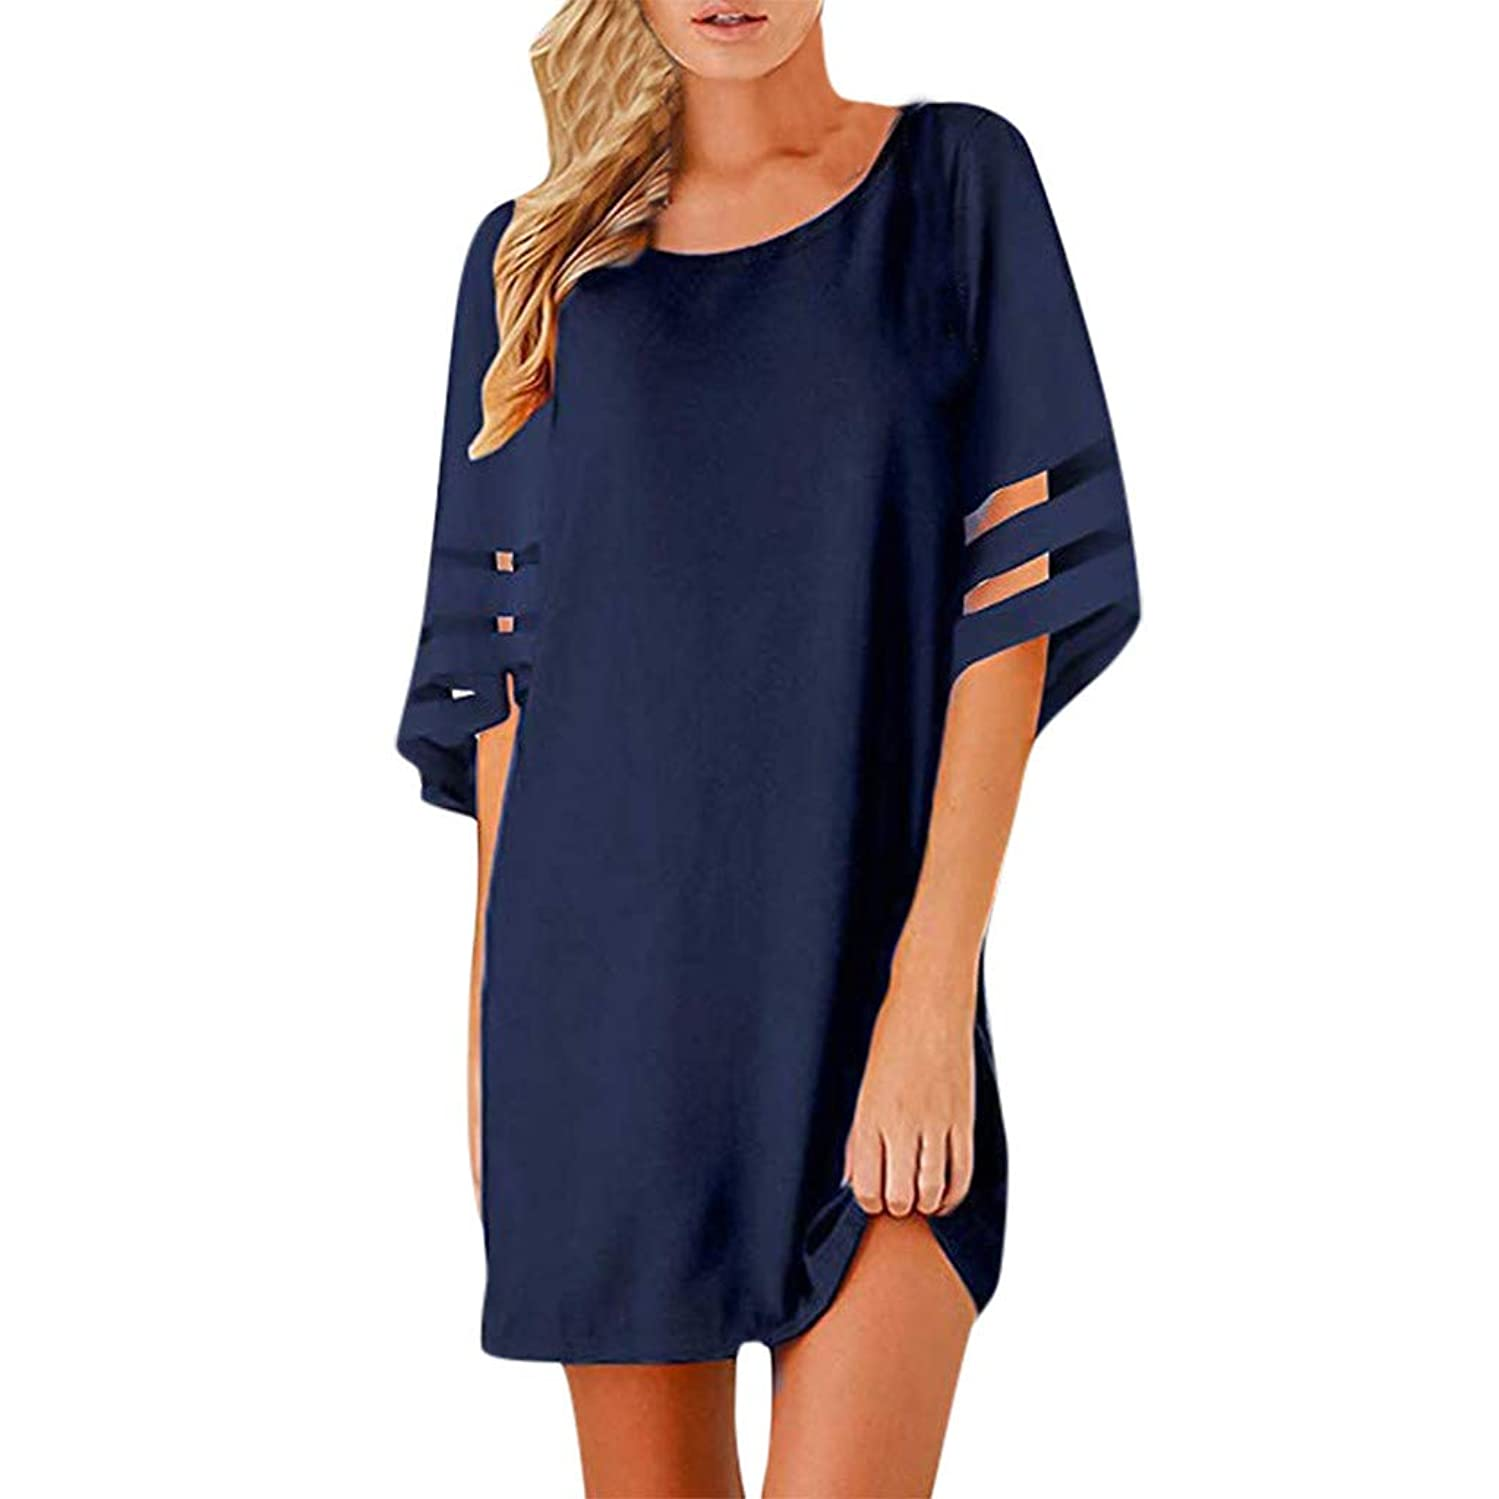 Cocktail Dresses for Women 3/4 Bell Sleeve Mesh T Shirt Dress Lace Patchwork Blouse Casual Loose Mini Dress